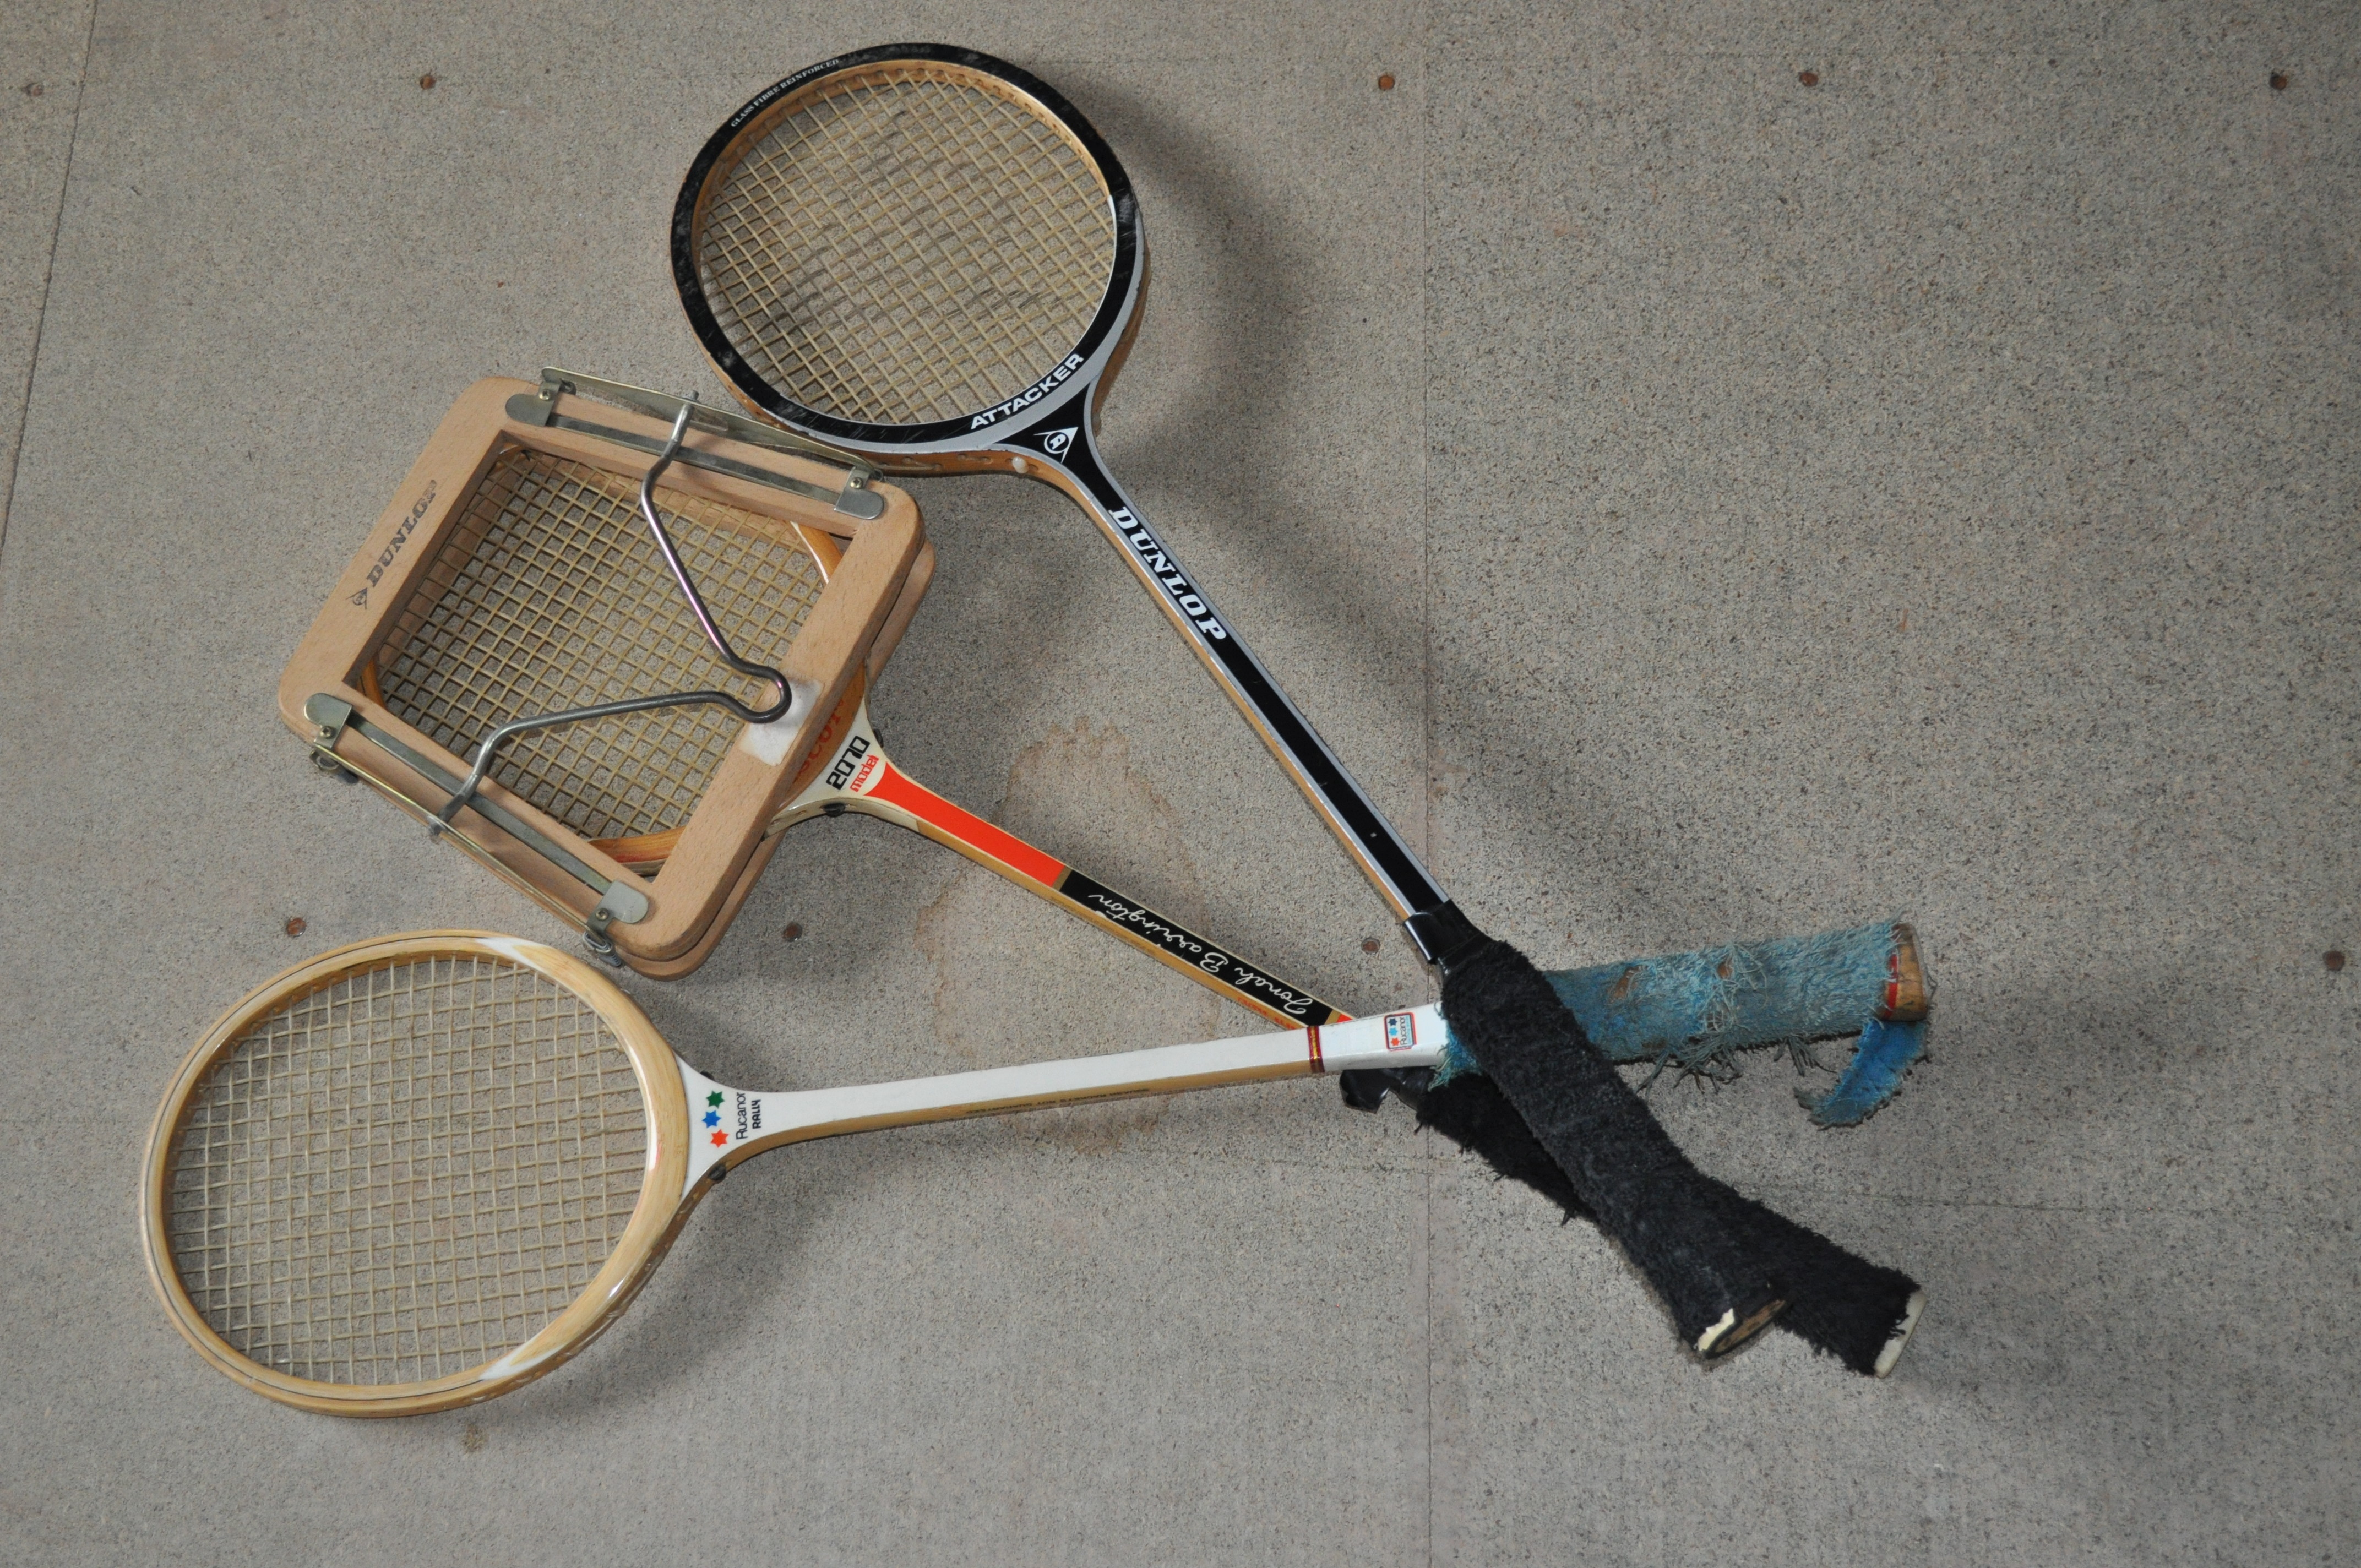 Three wooden rackets, one with racket press